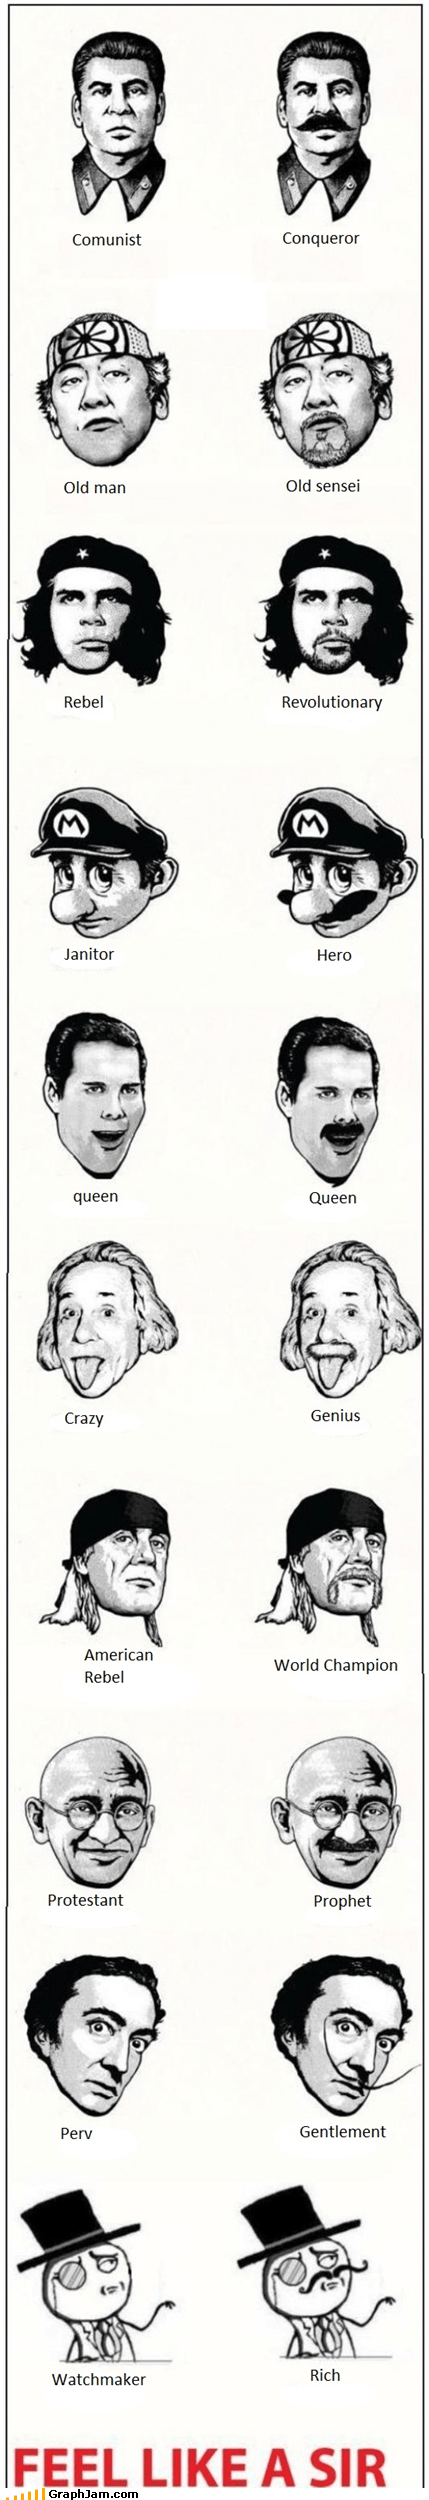 Memes moustaches mustaches sir win - 4827344384